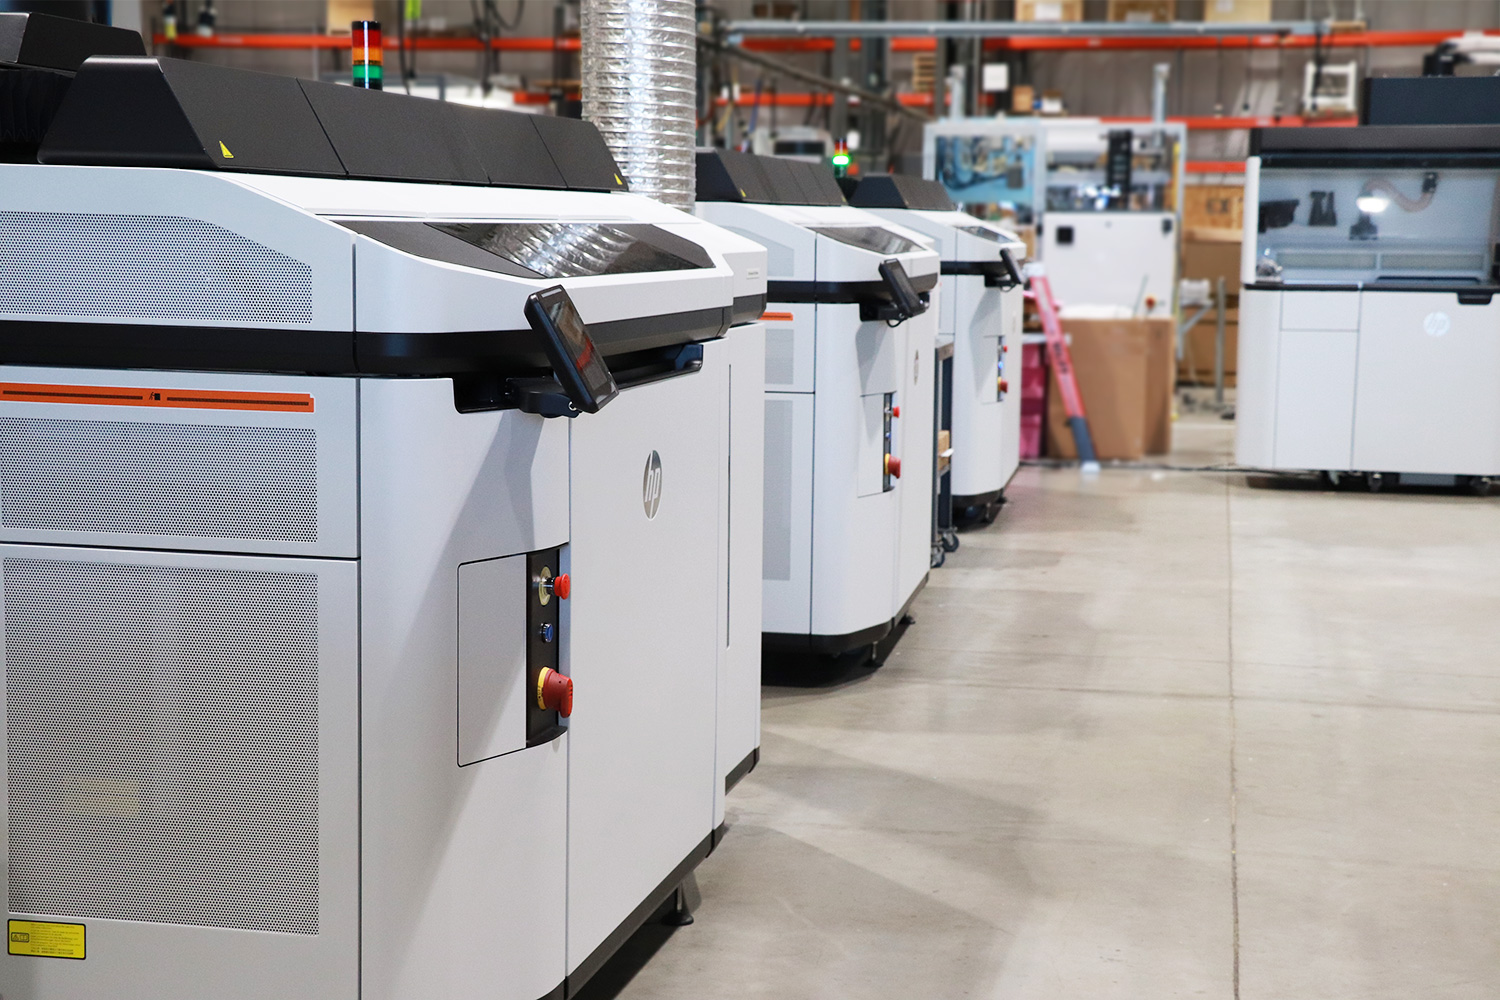 Extol partners with HP to launch Digital Development Center™ for 3D printing